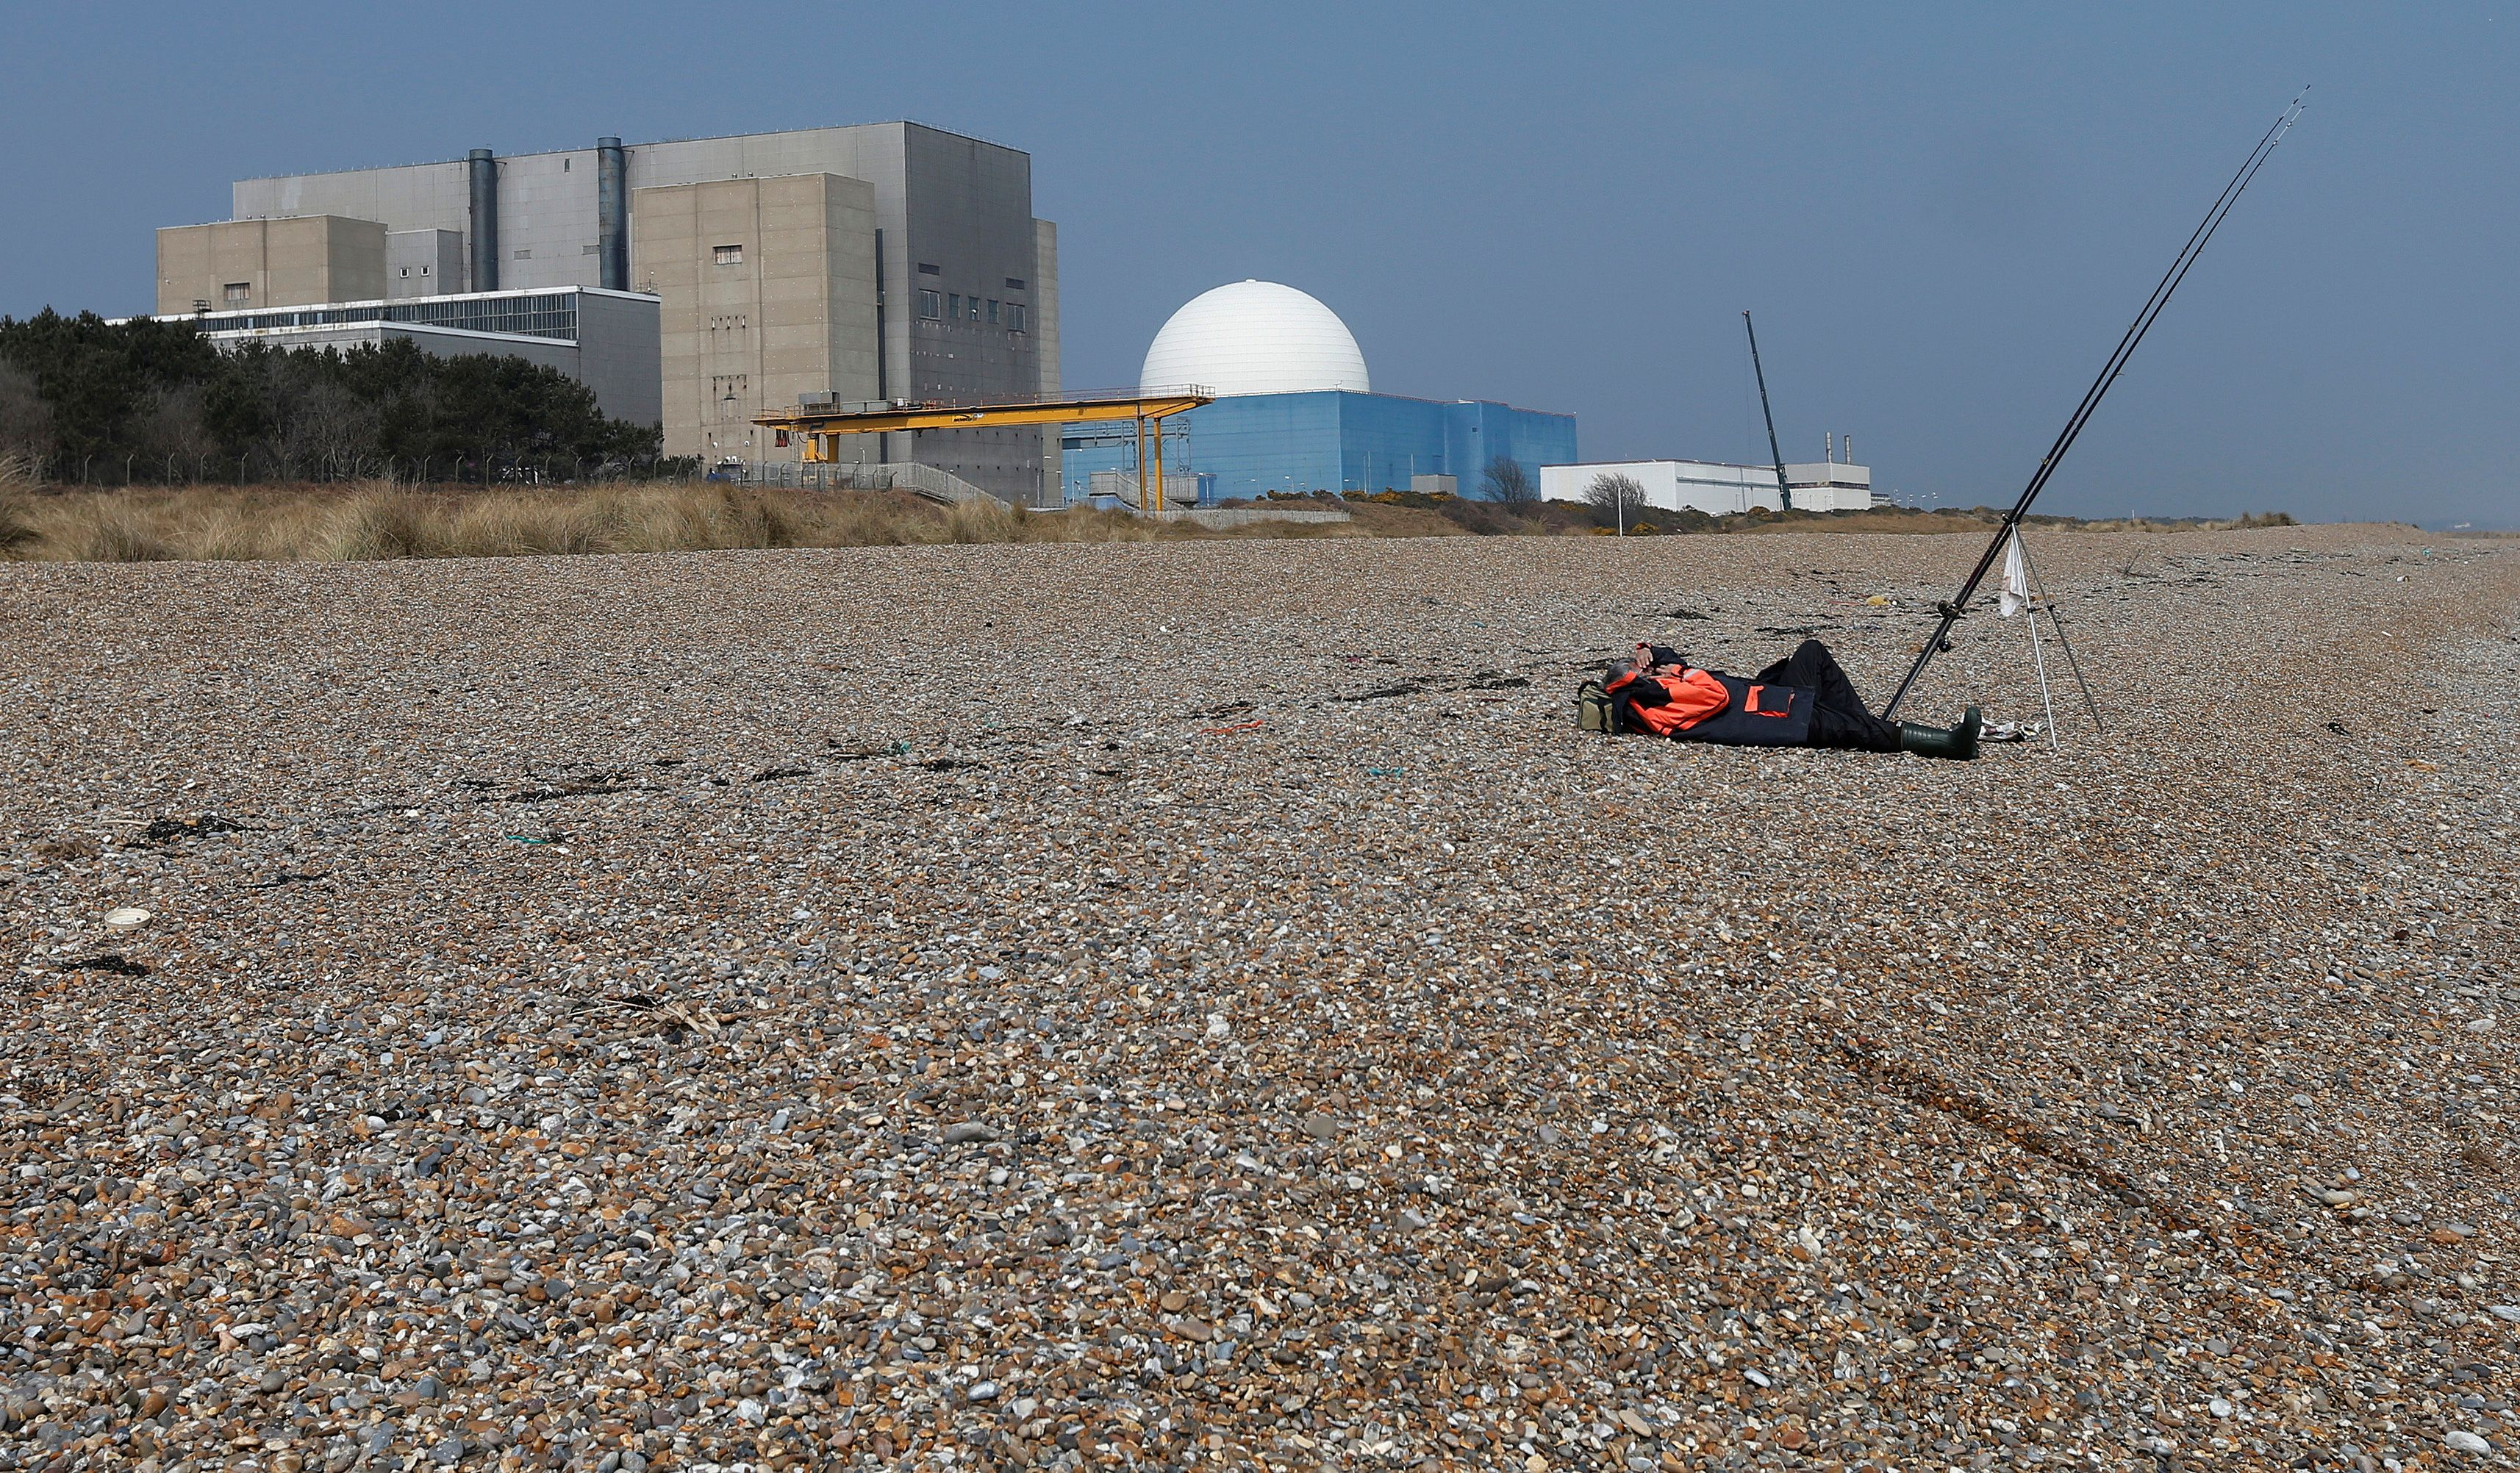 A fisherman takes a nap on Sizewell beach outside Sizewell nuclear power station in Suffolk, eastern England April 10, 2013. REUTERS/Suzanne Plunkett